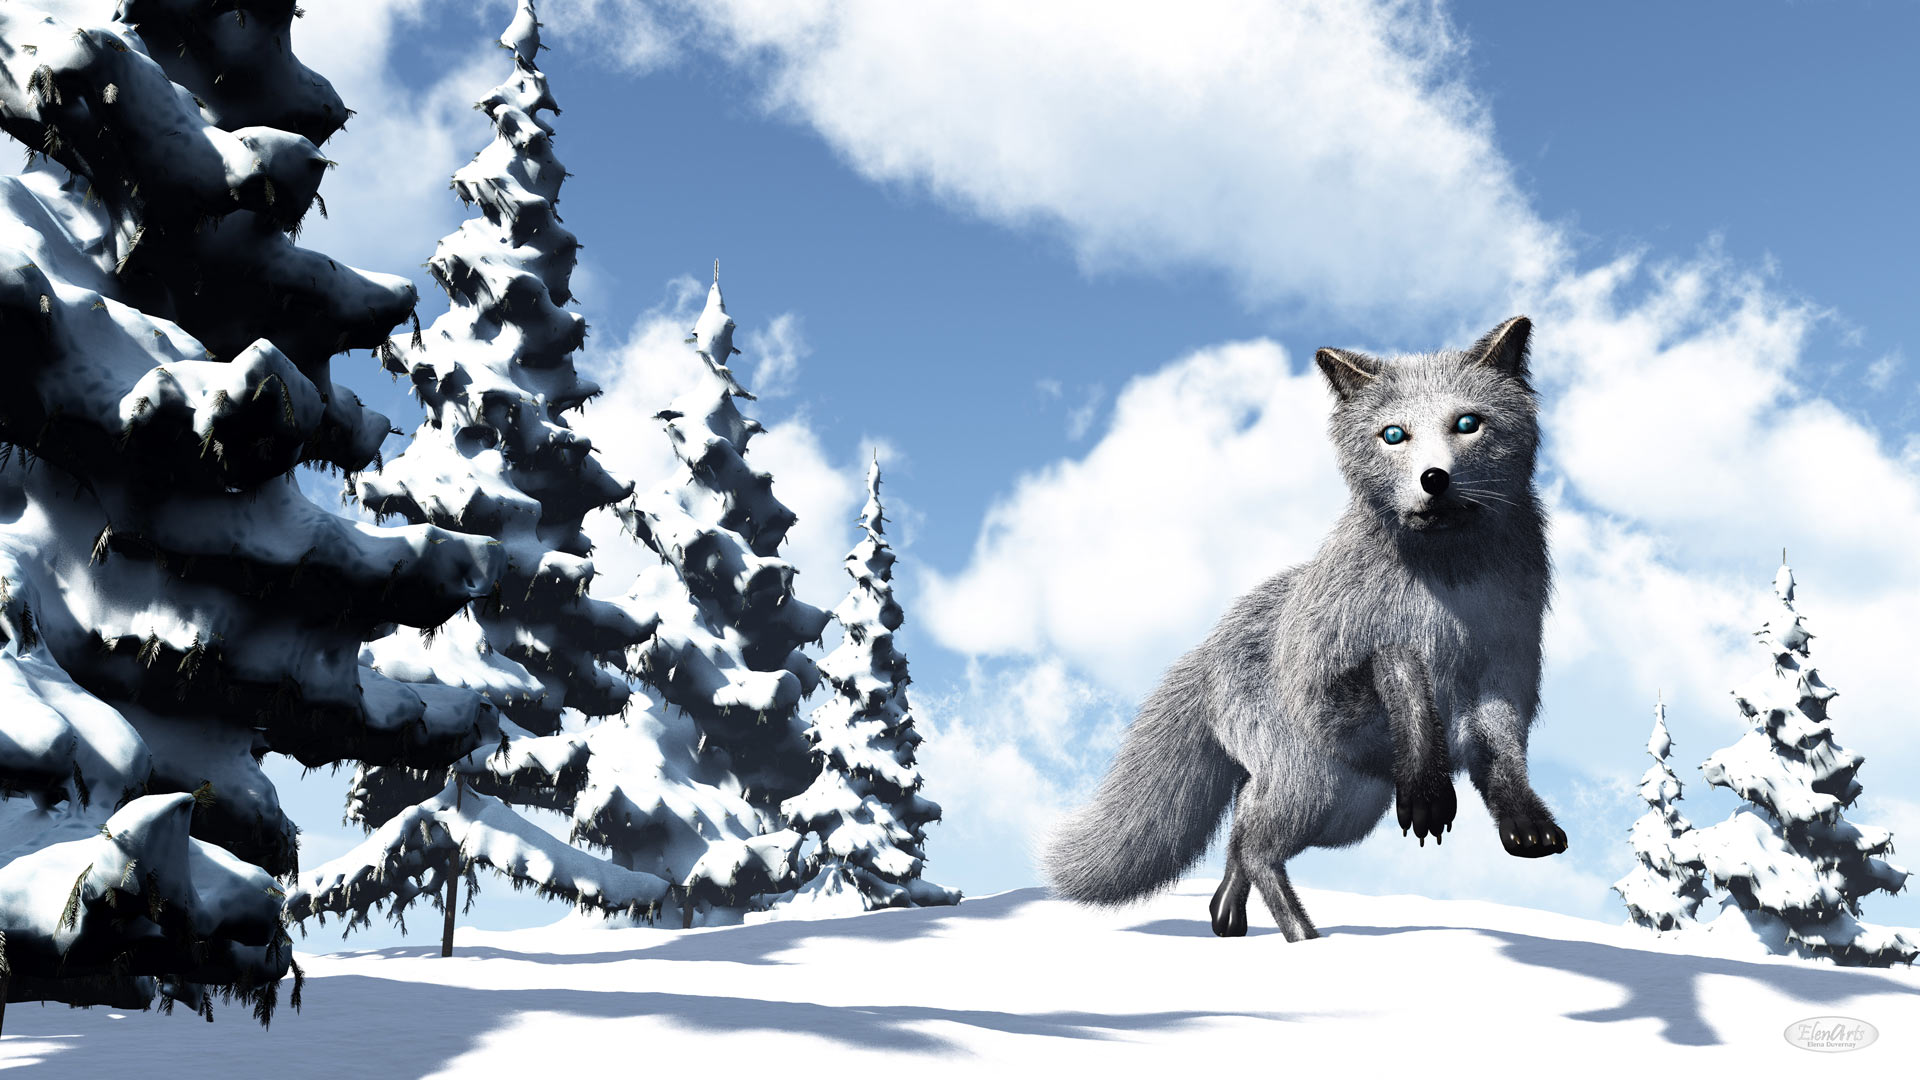 White fox in the mountain near fir trees by winter day – 3D render